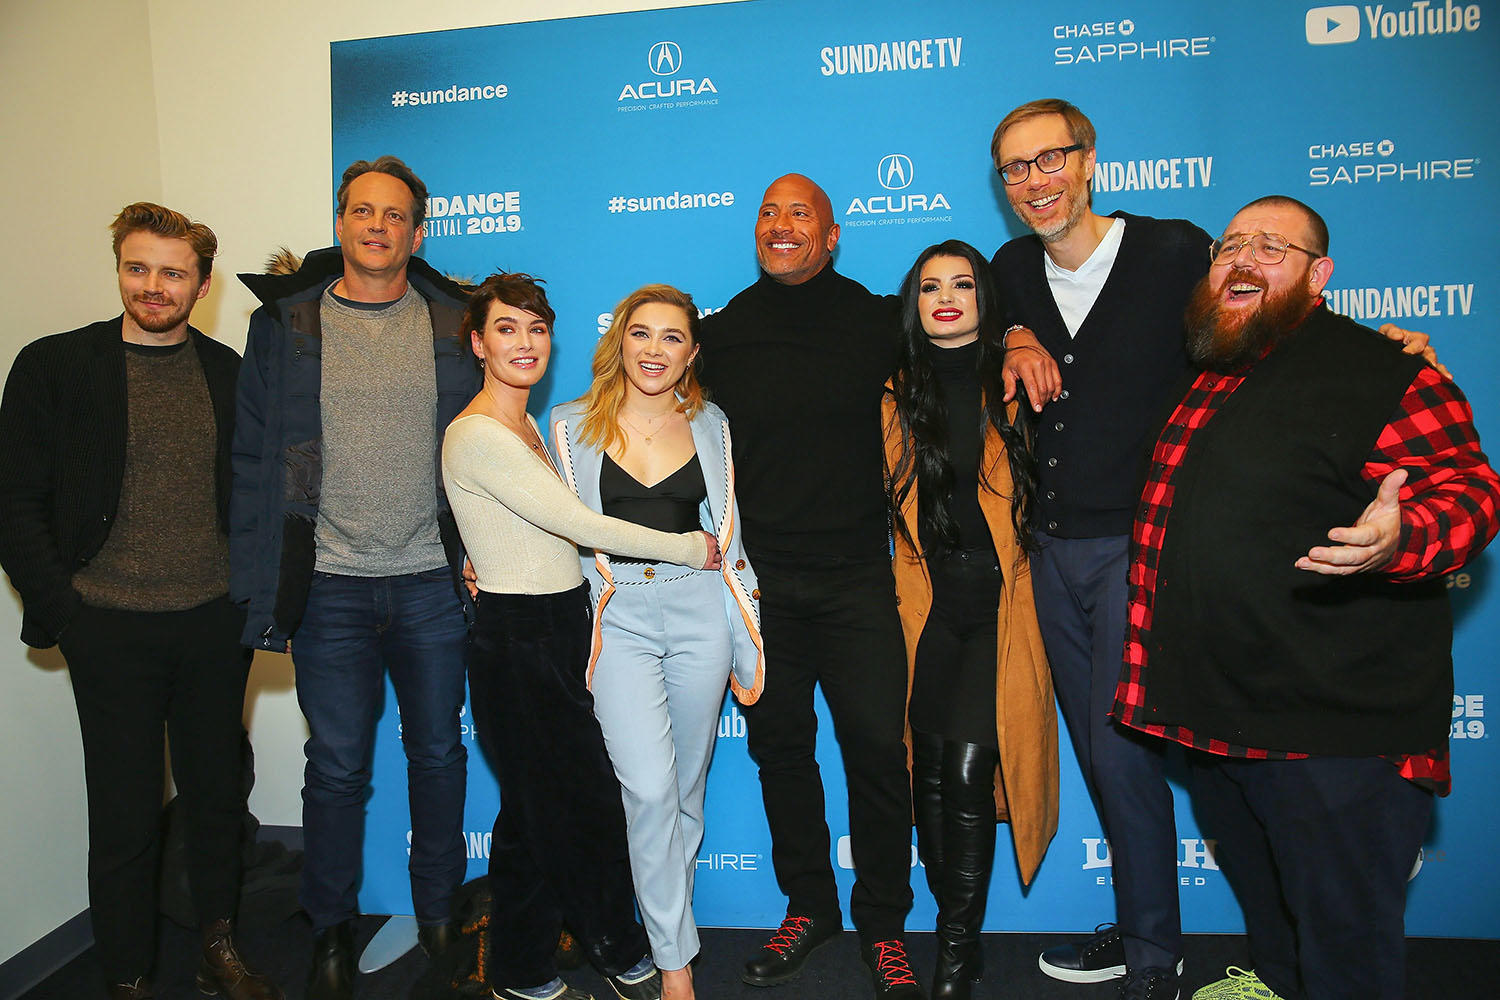 Jack Lowden, Vince Vaughn, Lena Headey, Florence Pugh, Dwayne Johnson, Paige, Stephen Merchant and Nick Frost